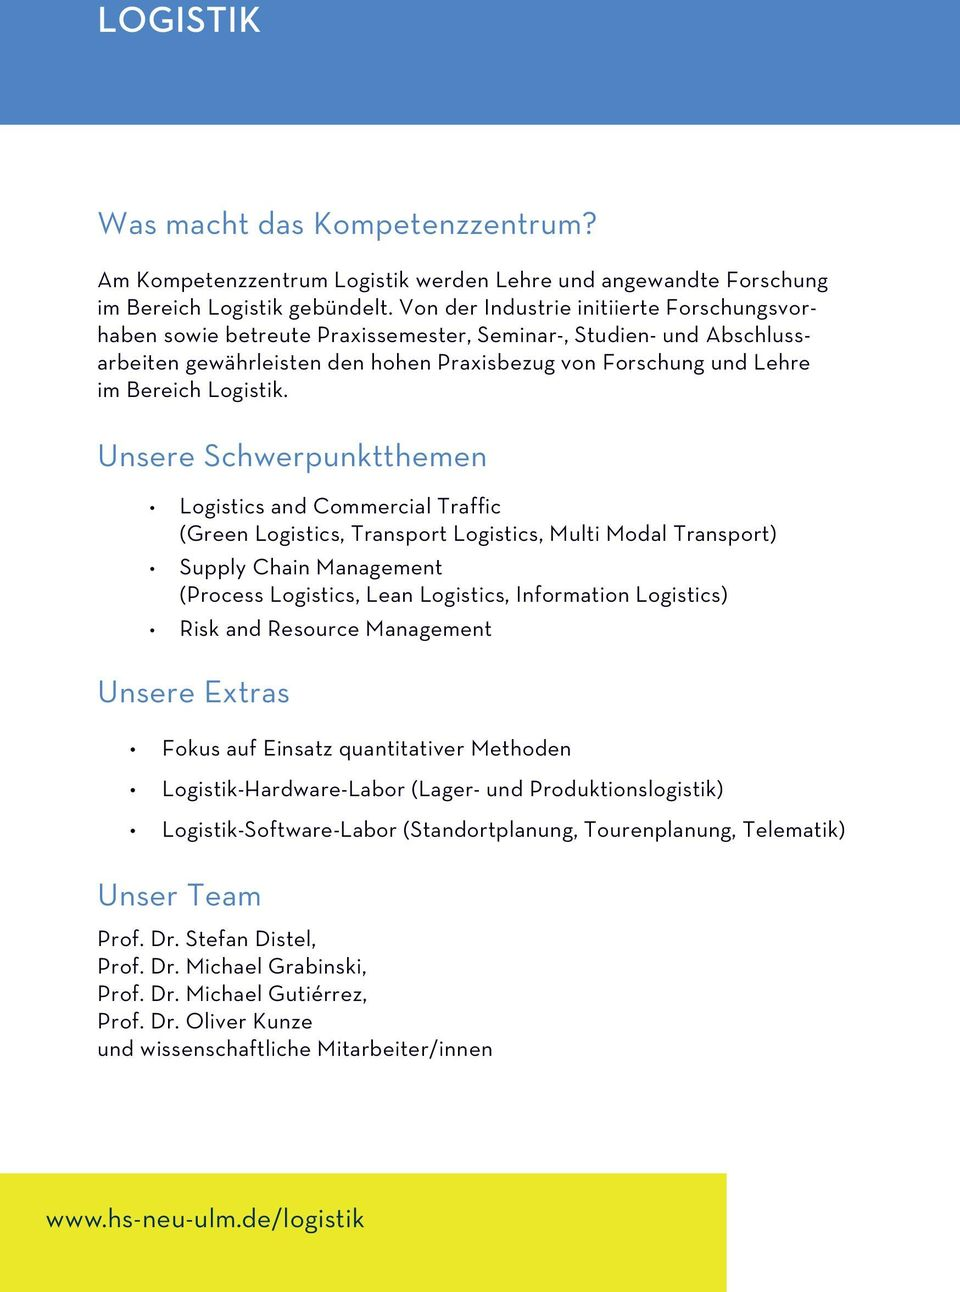 Unsere Schwerpunktthemen Logistics and Commercial Traffic (Green Logistics, Transport Logistics, Multi Modal Transport) Supply Chain Management (Process Logistics, Lean Logistics, Information